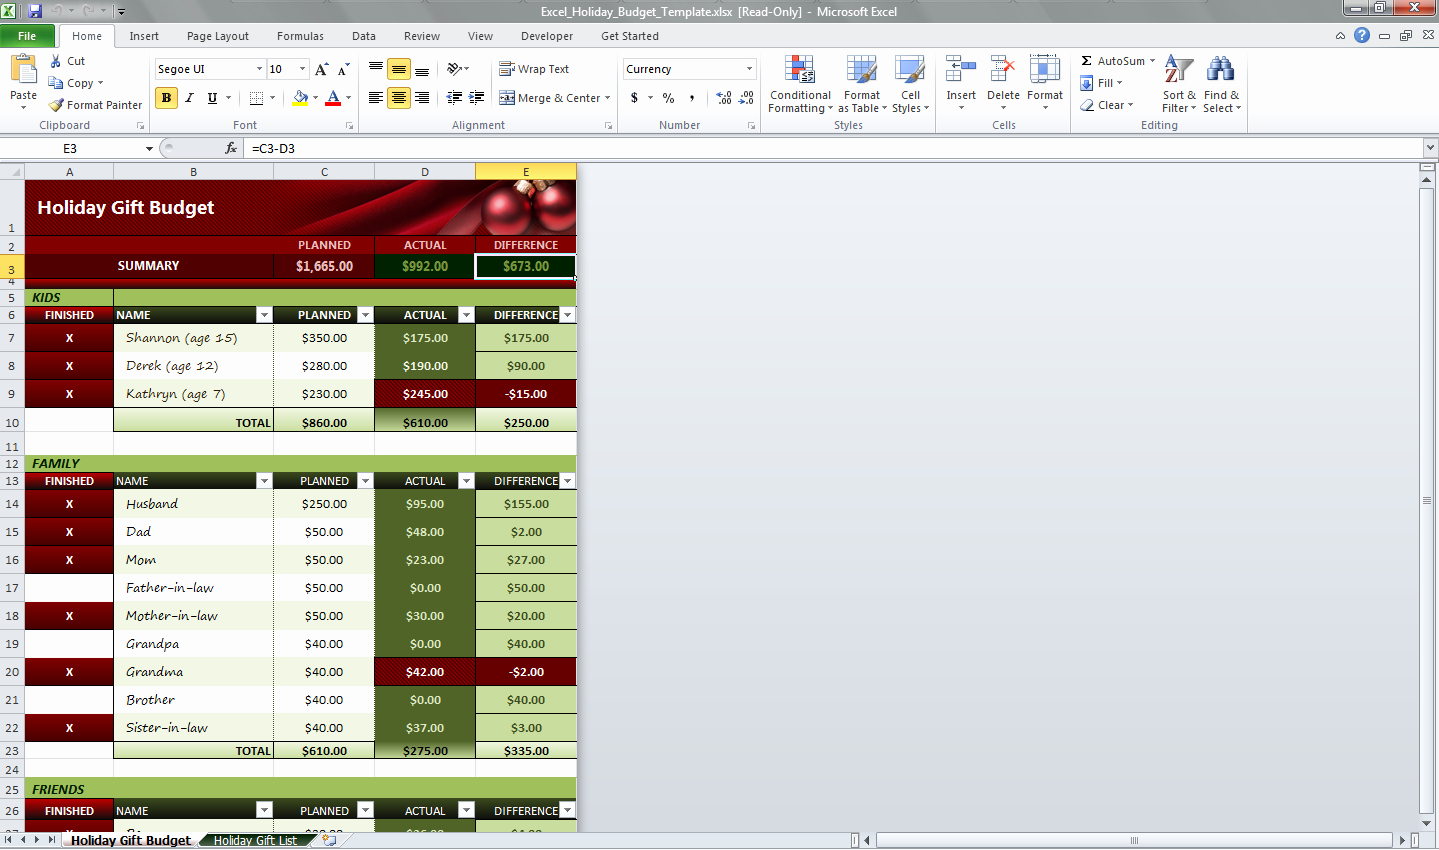 Ms Office Budget Template Unique Excel Holiday Bud Template